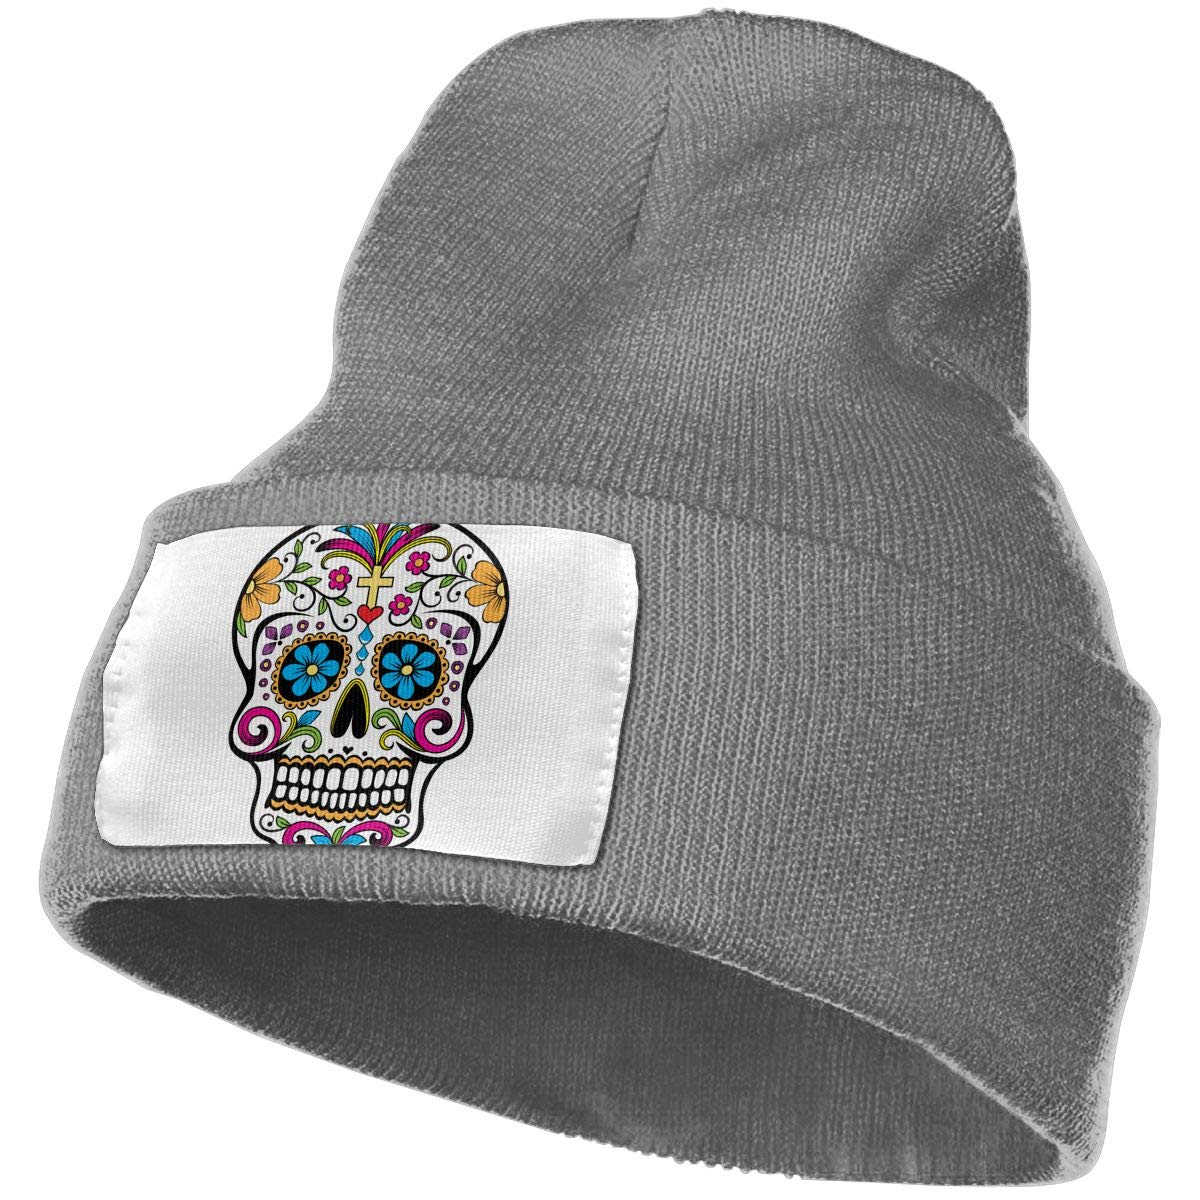 QZqDQ Dead of The Day Skull Unisex Fashion Knitted Hat Luxury Hip-Hop Cap